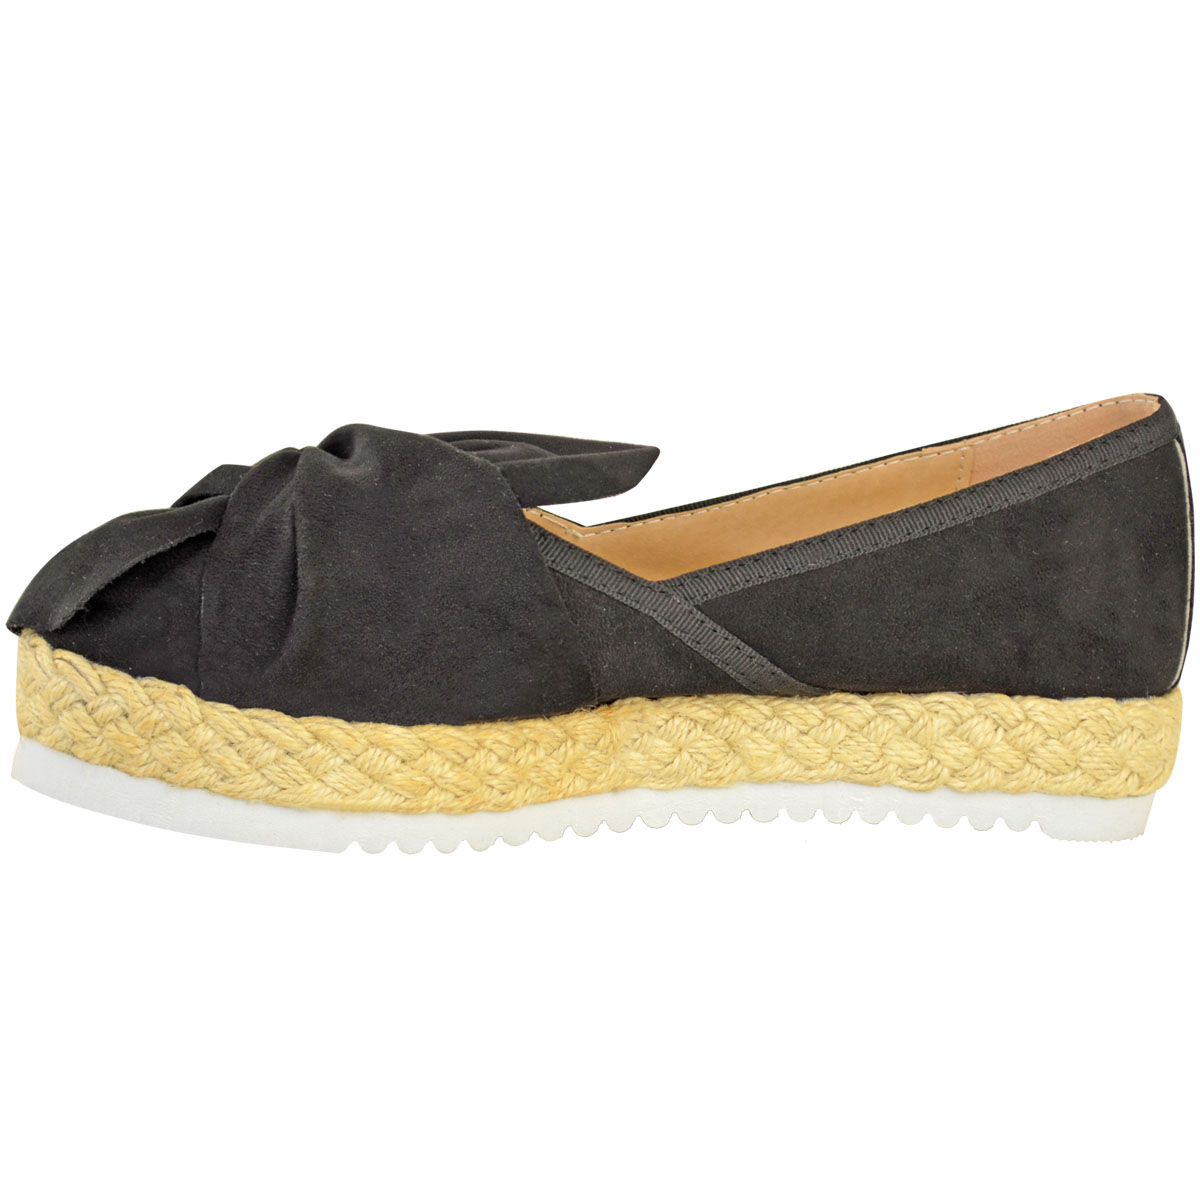 Womens-Ladies-Espadrilles-Flat-Pom-Pom-Sandals-Slip-On-Strappy-Comfy-Size-Shoes thumbnail 36